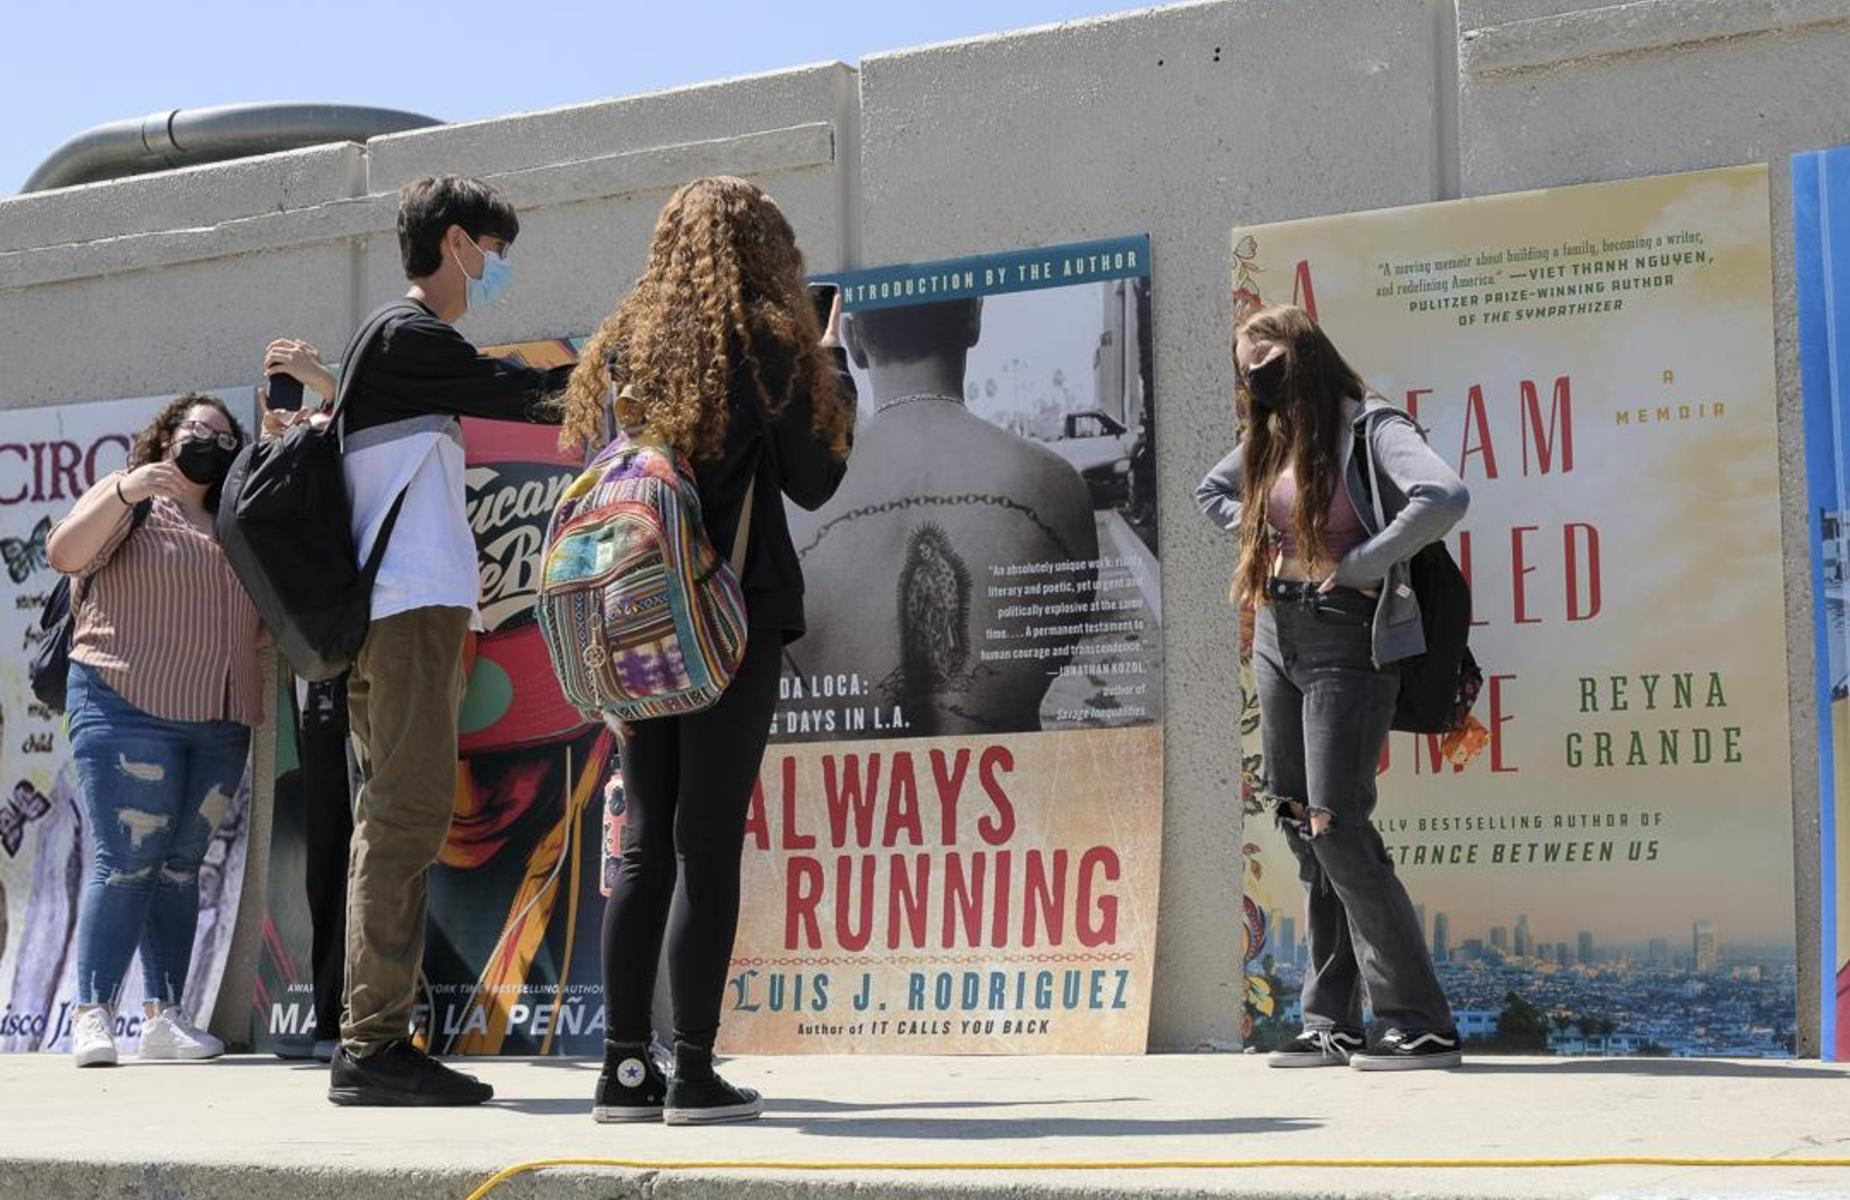 GHS kicked off its literacy campaign, Cafecito con Libros - Over 1,100 students signed up to participate in a month-long (Hispanic Heritage) reading program! #Proud2bepusd @ghscafecitoconlibros http://edl.io/n1496771